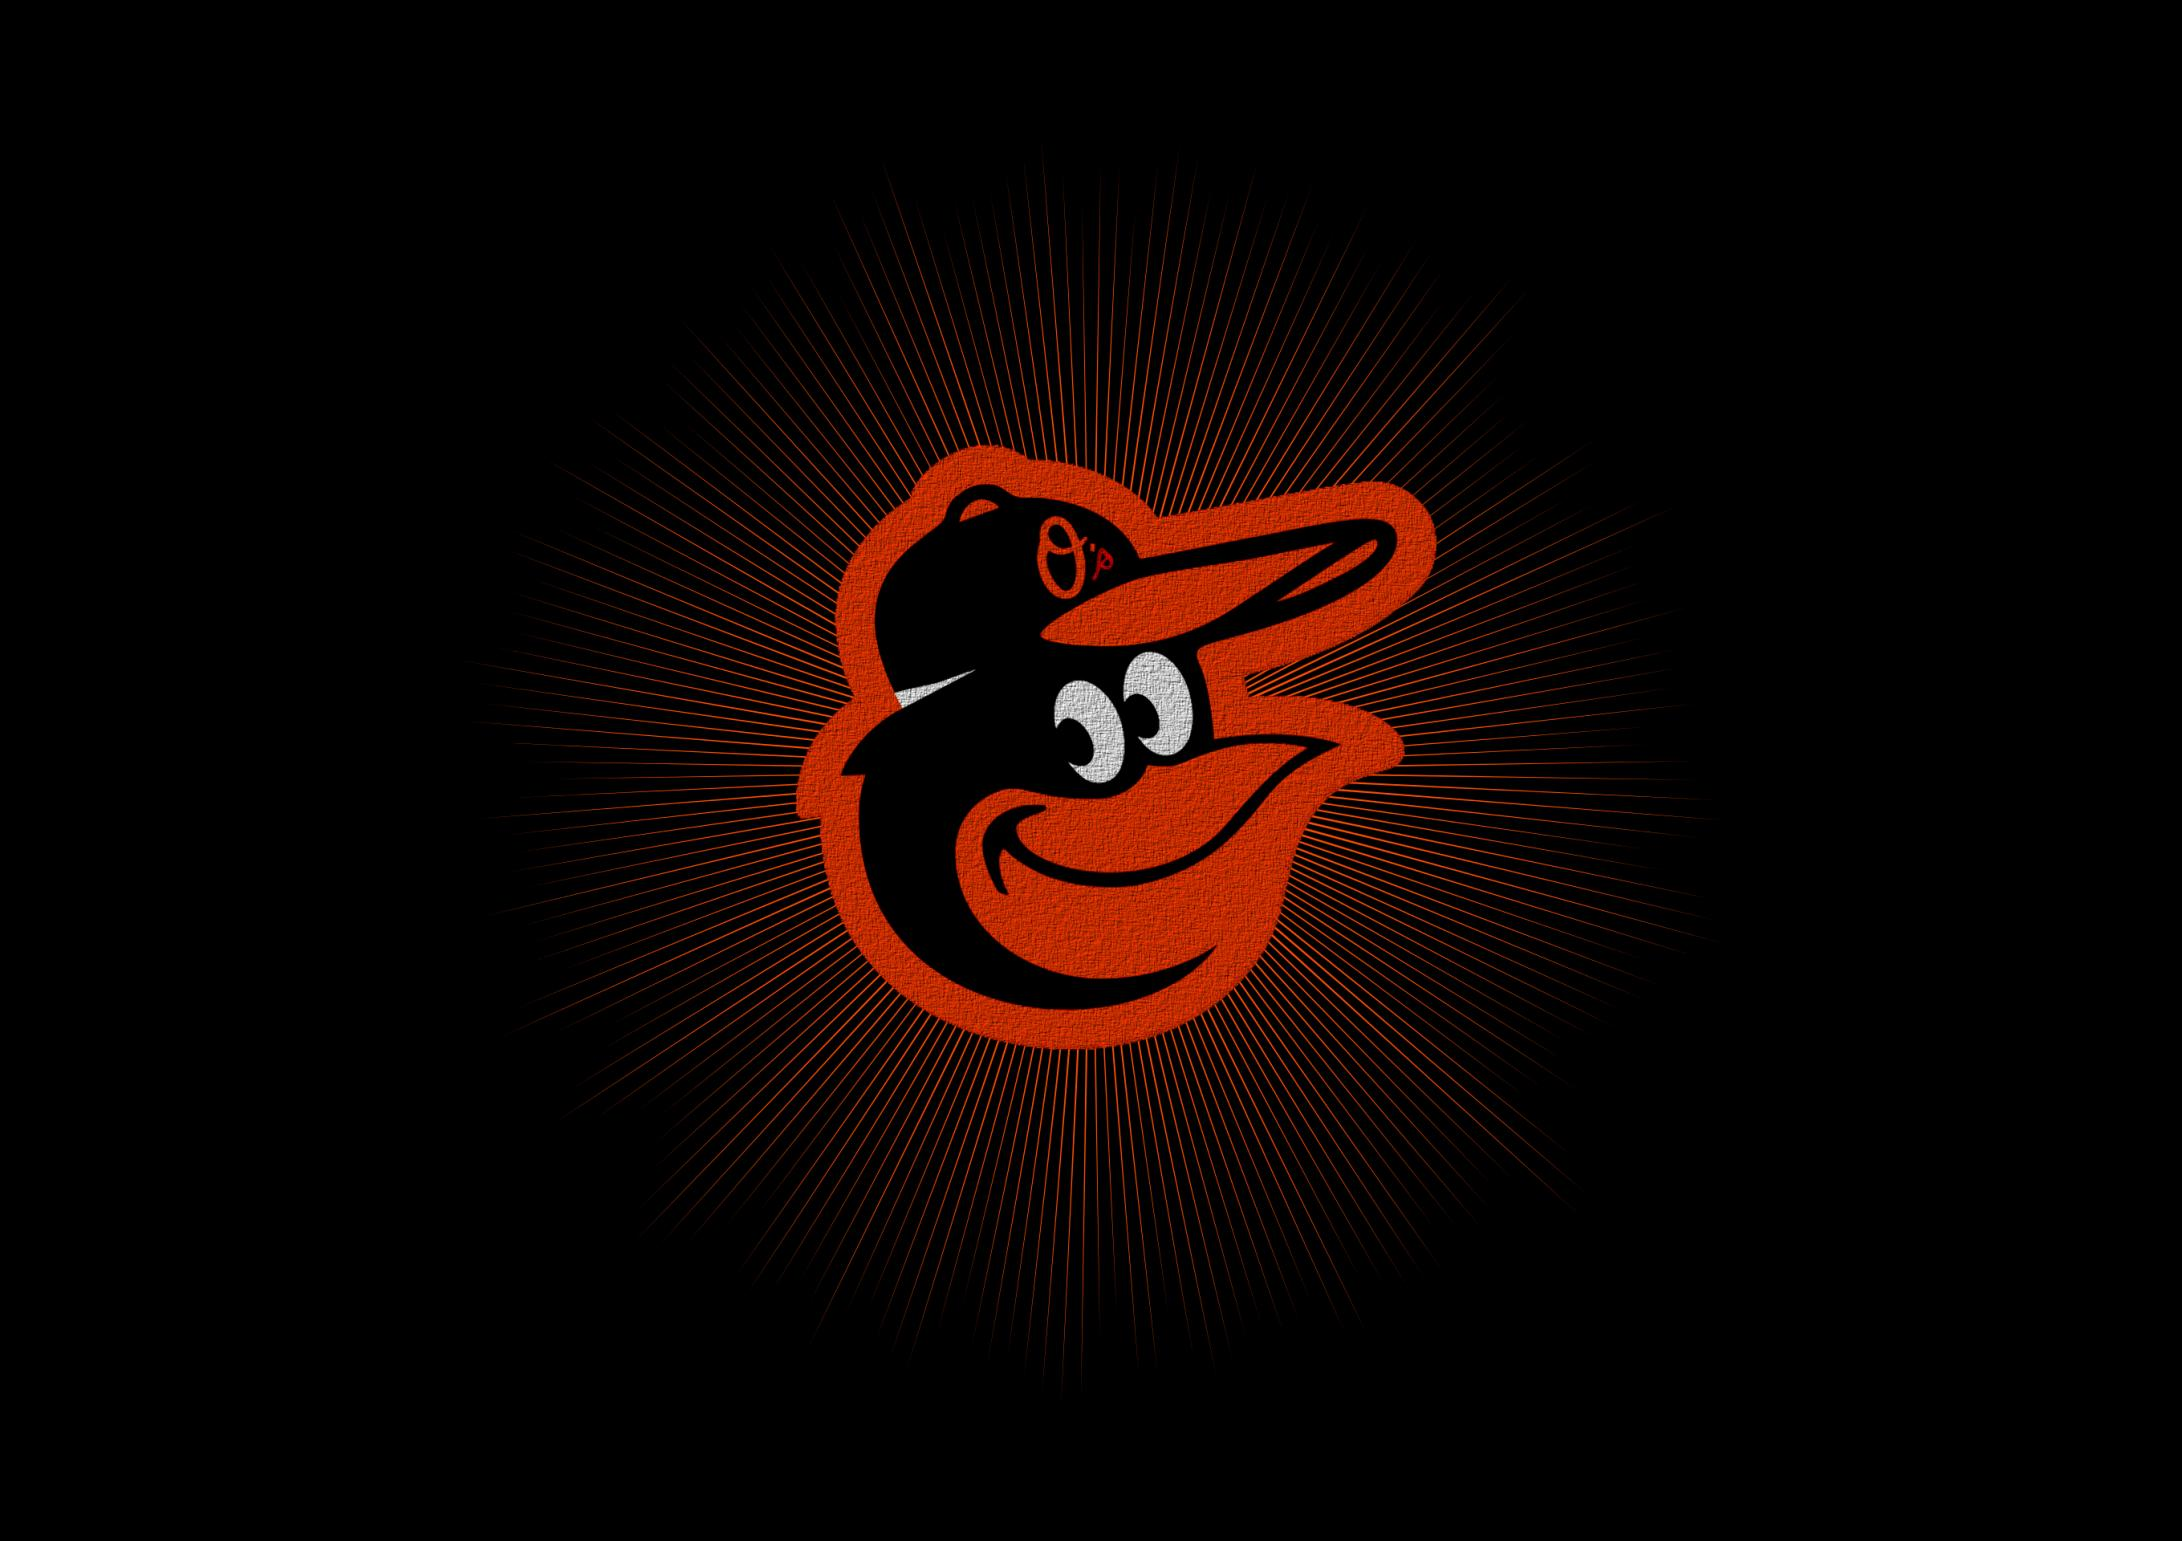 WALLPAPER] Baltimore Orioles Ravens Wallp Android Development 2182x1541